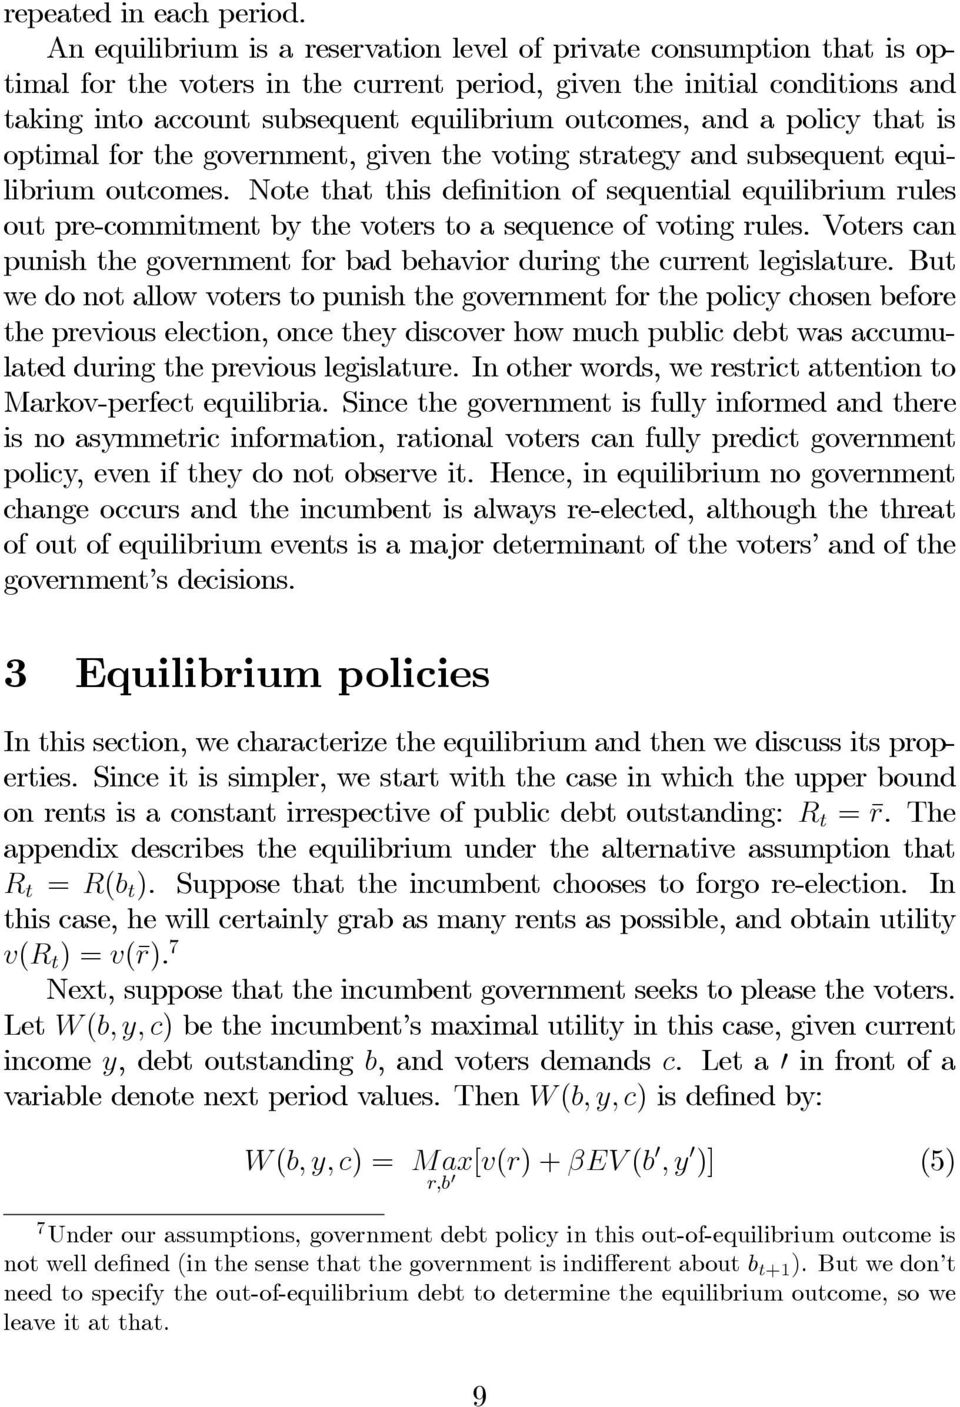 outcomes, and a policy that is optimal for the government, given the voting strategy and subsequent equilibrium outcomes.